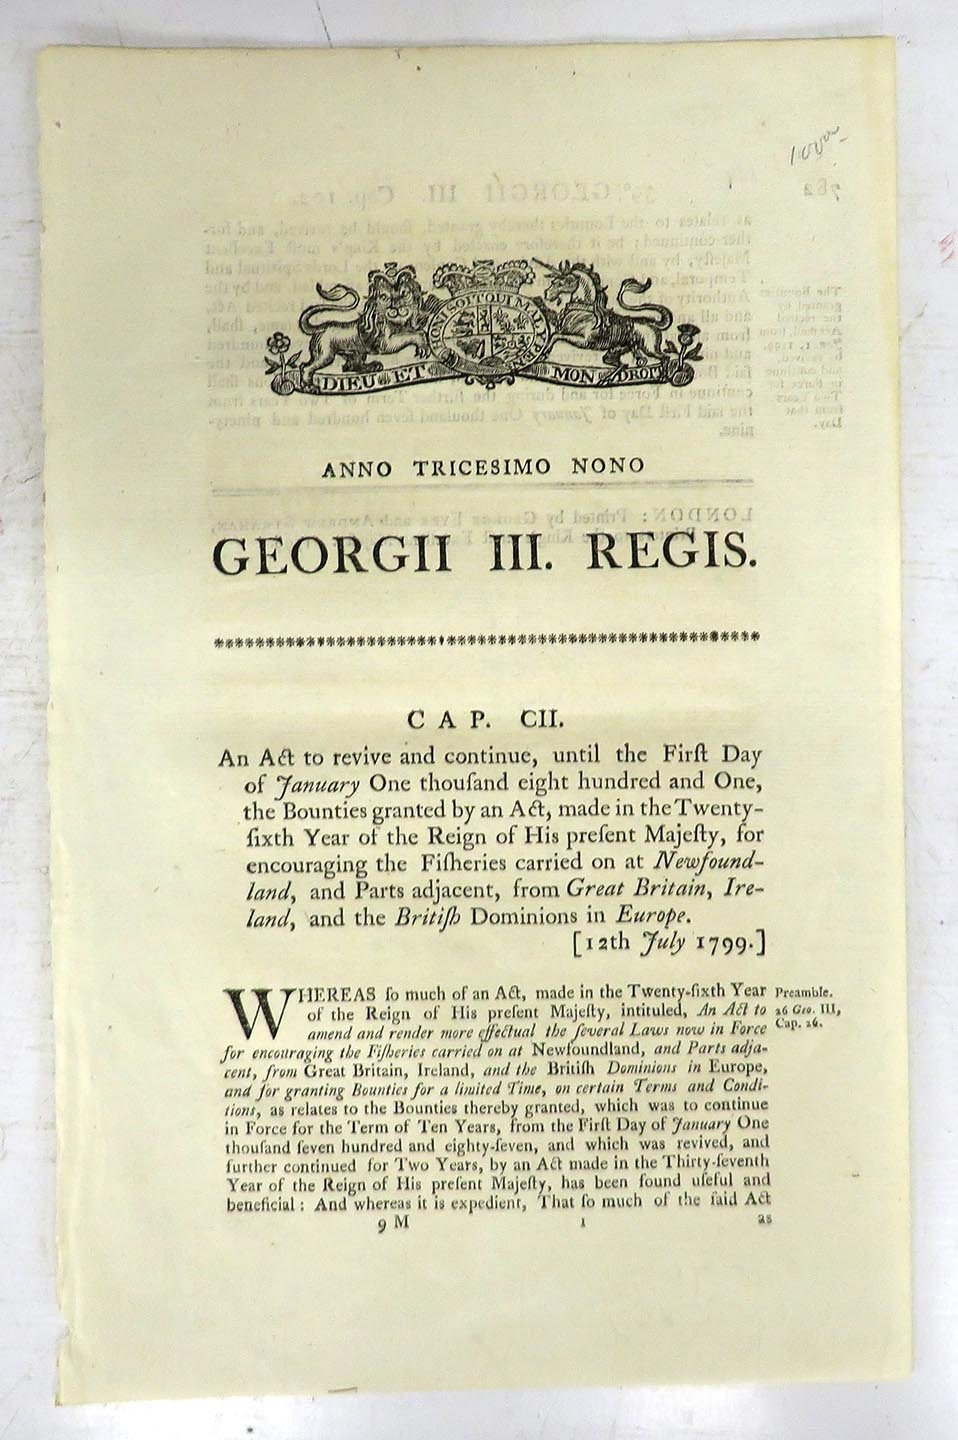 An Act to revive and continue, until the First Day of January One thousand eight hundred and One, the Bounties granted by an Act, made in the Twenty-sixth Year of the Reign of His present Majesty, for encouraging the Fisheries carried on at Newfoundland